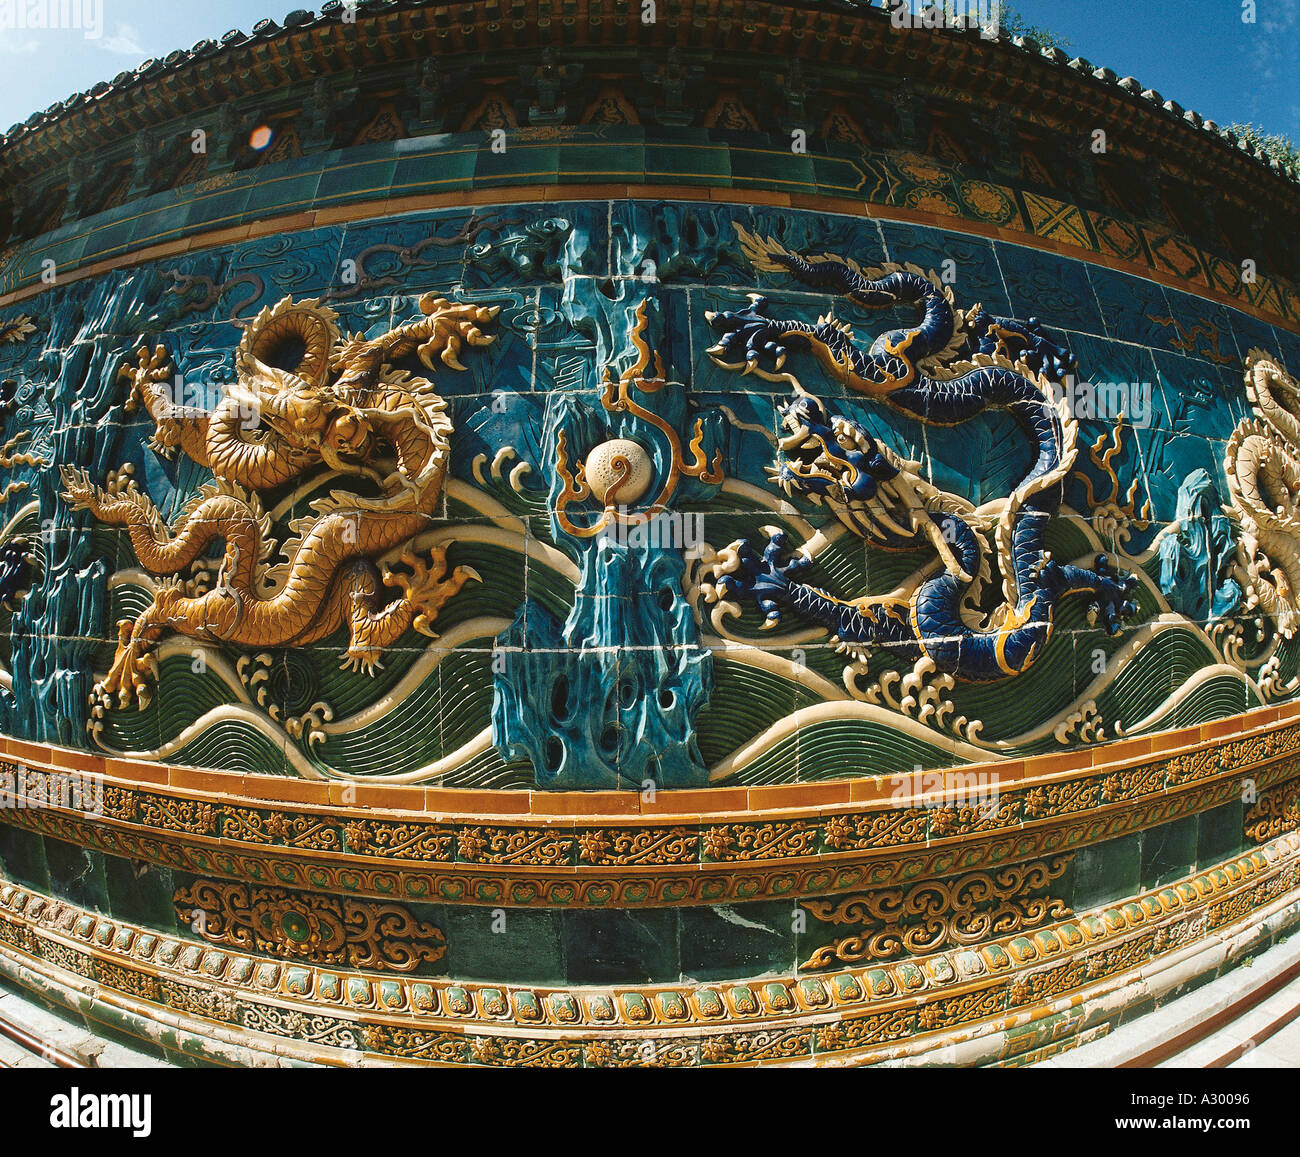 Nine dragon murals in Beihai Park - Stock Image